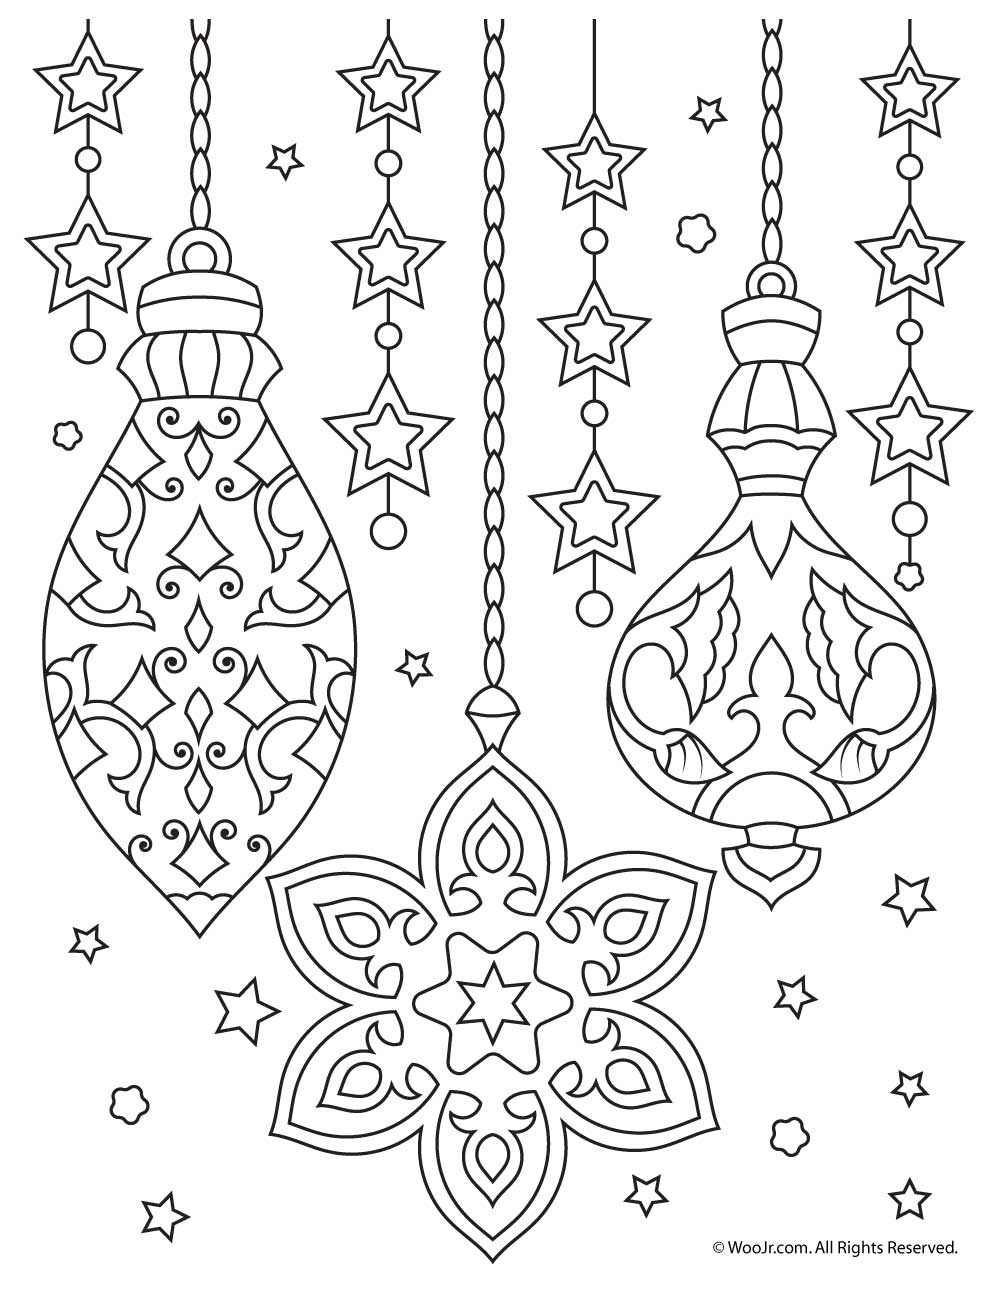 free online coloring pages for adults christmas christmas coloring book a holiday coloring book for coloring adults pages for free online christmas